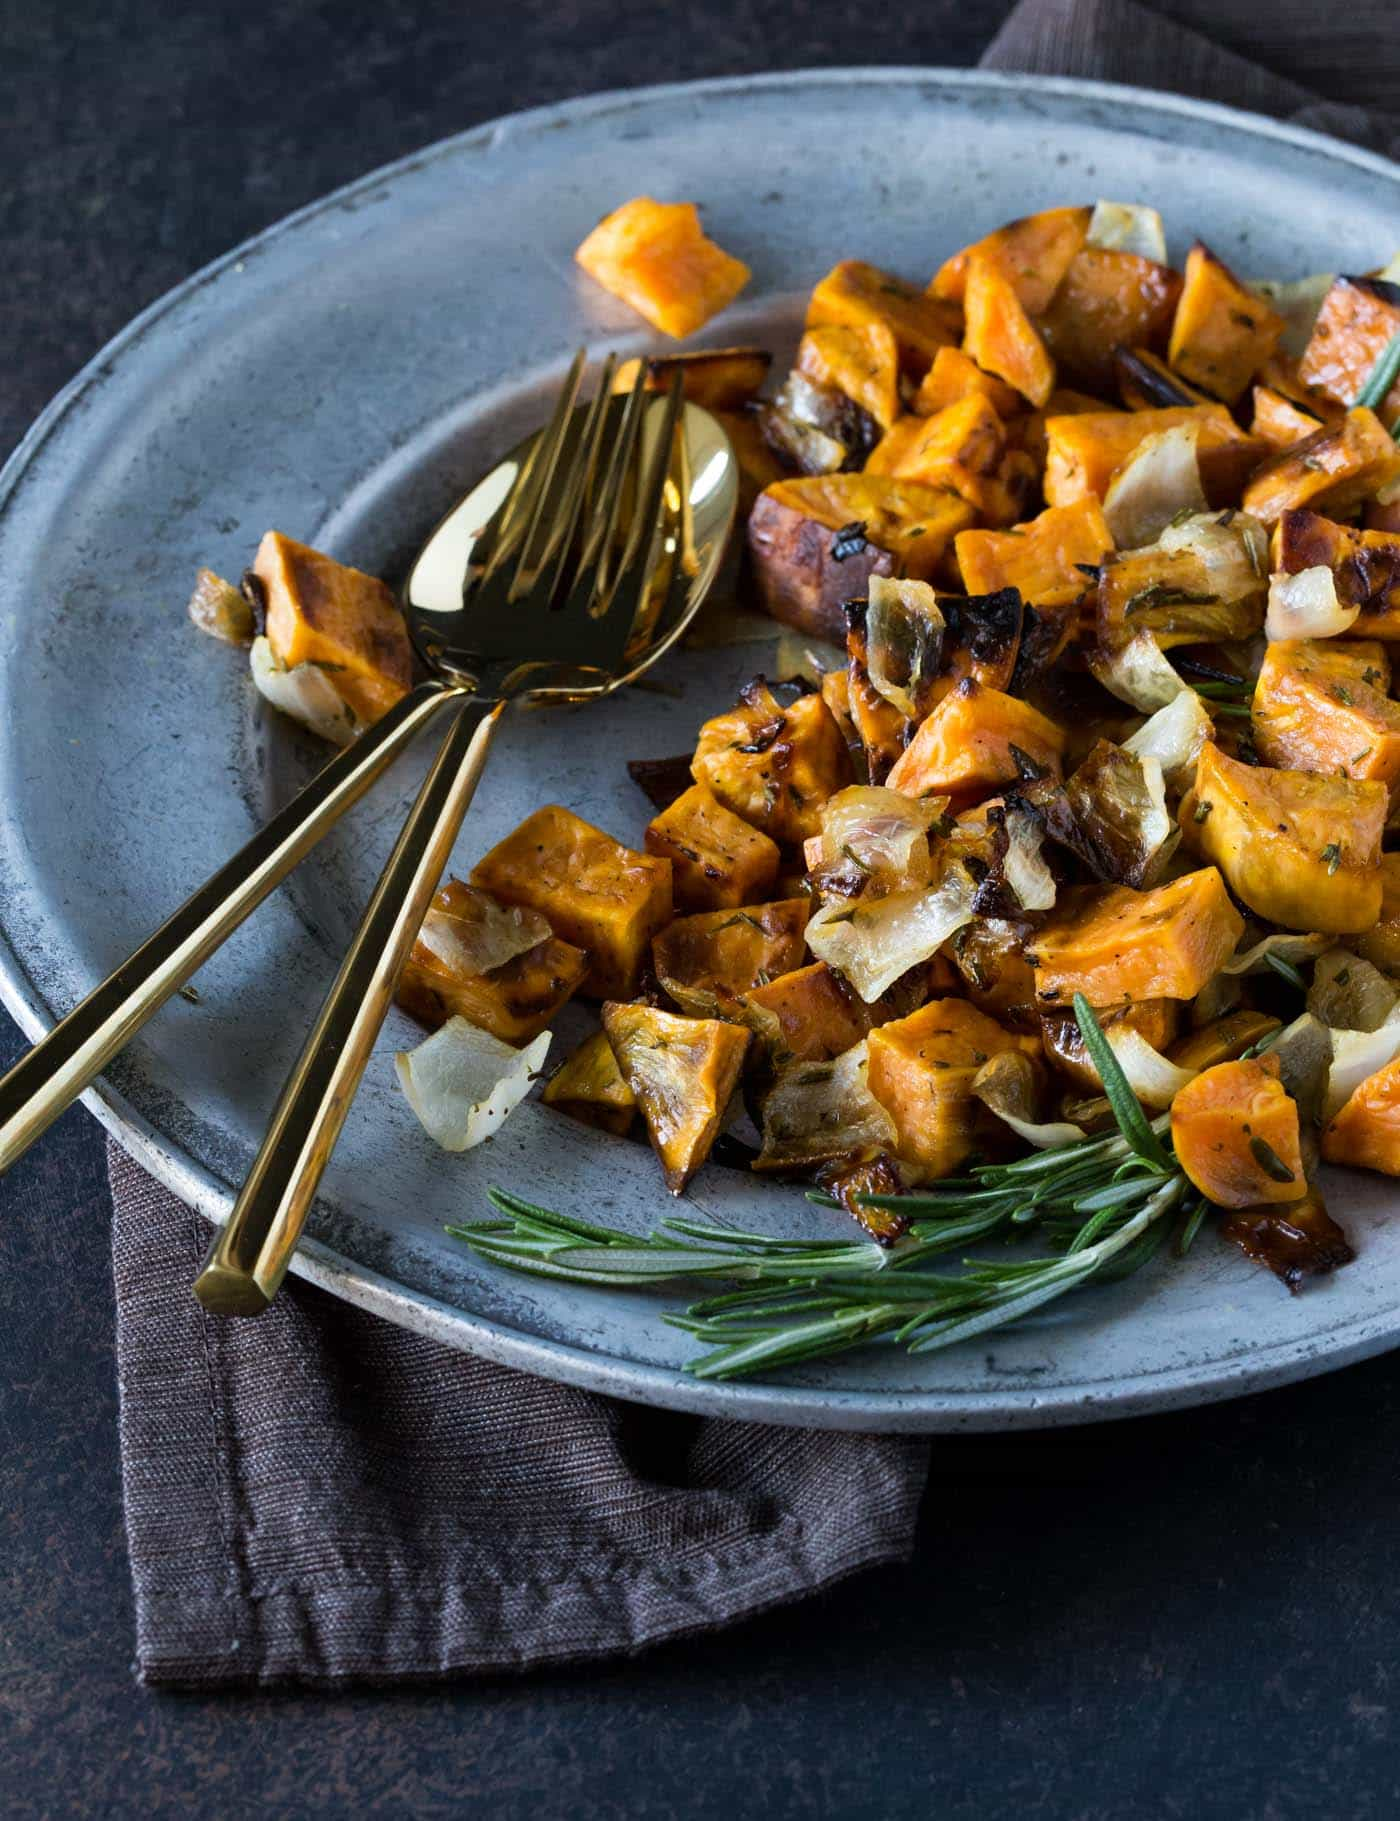 A silver plate filled with Rosemary Roasted Sweet Potatoes and Onions. Gold serveware and fresh rosemary sprigs are nearby.